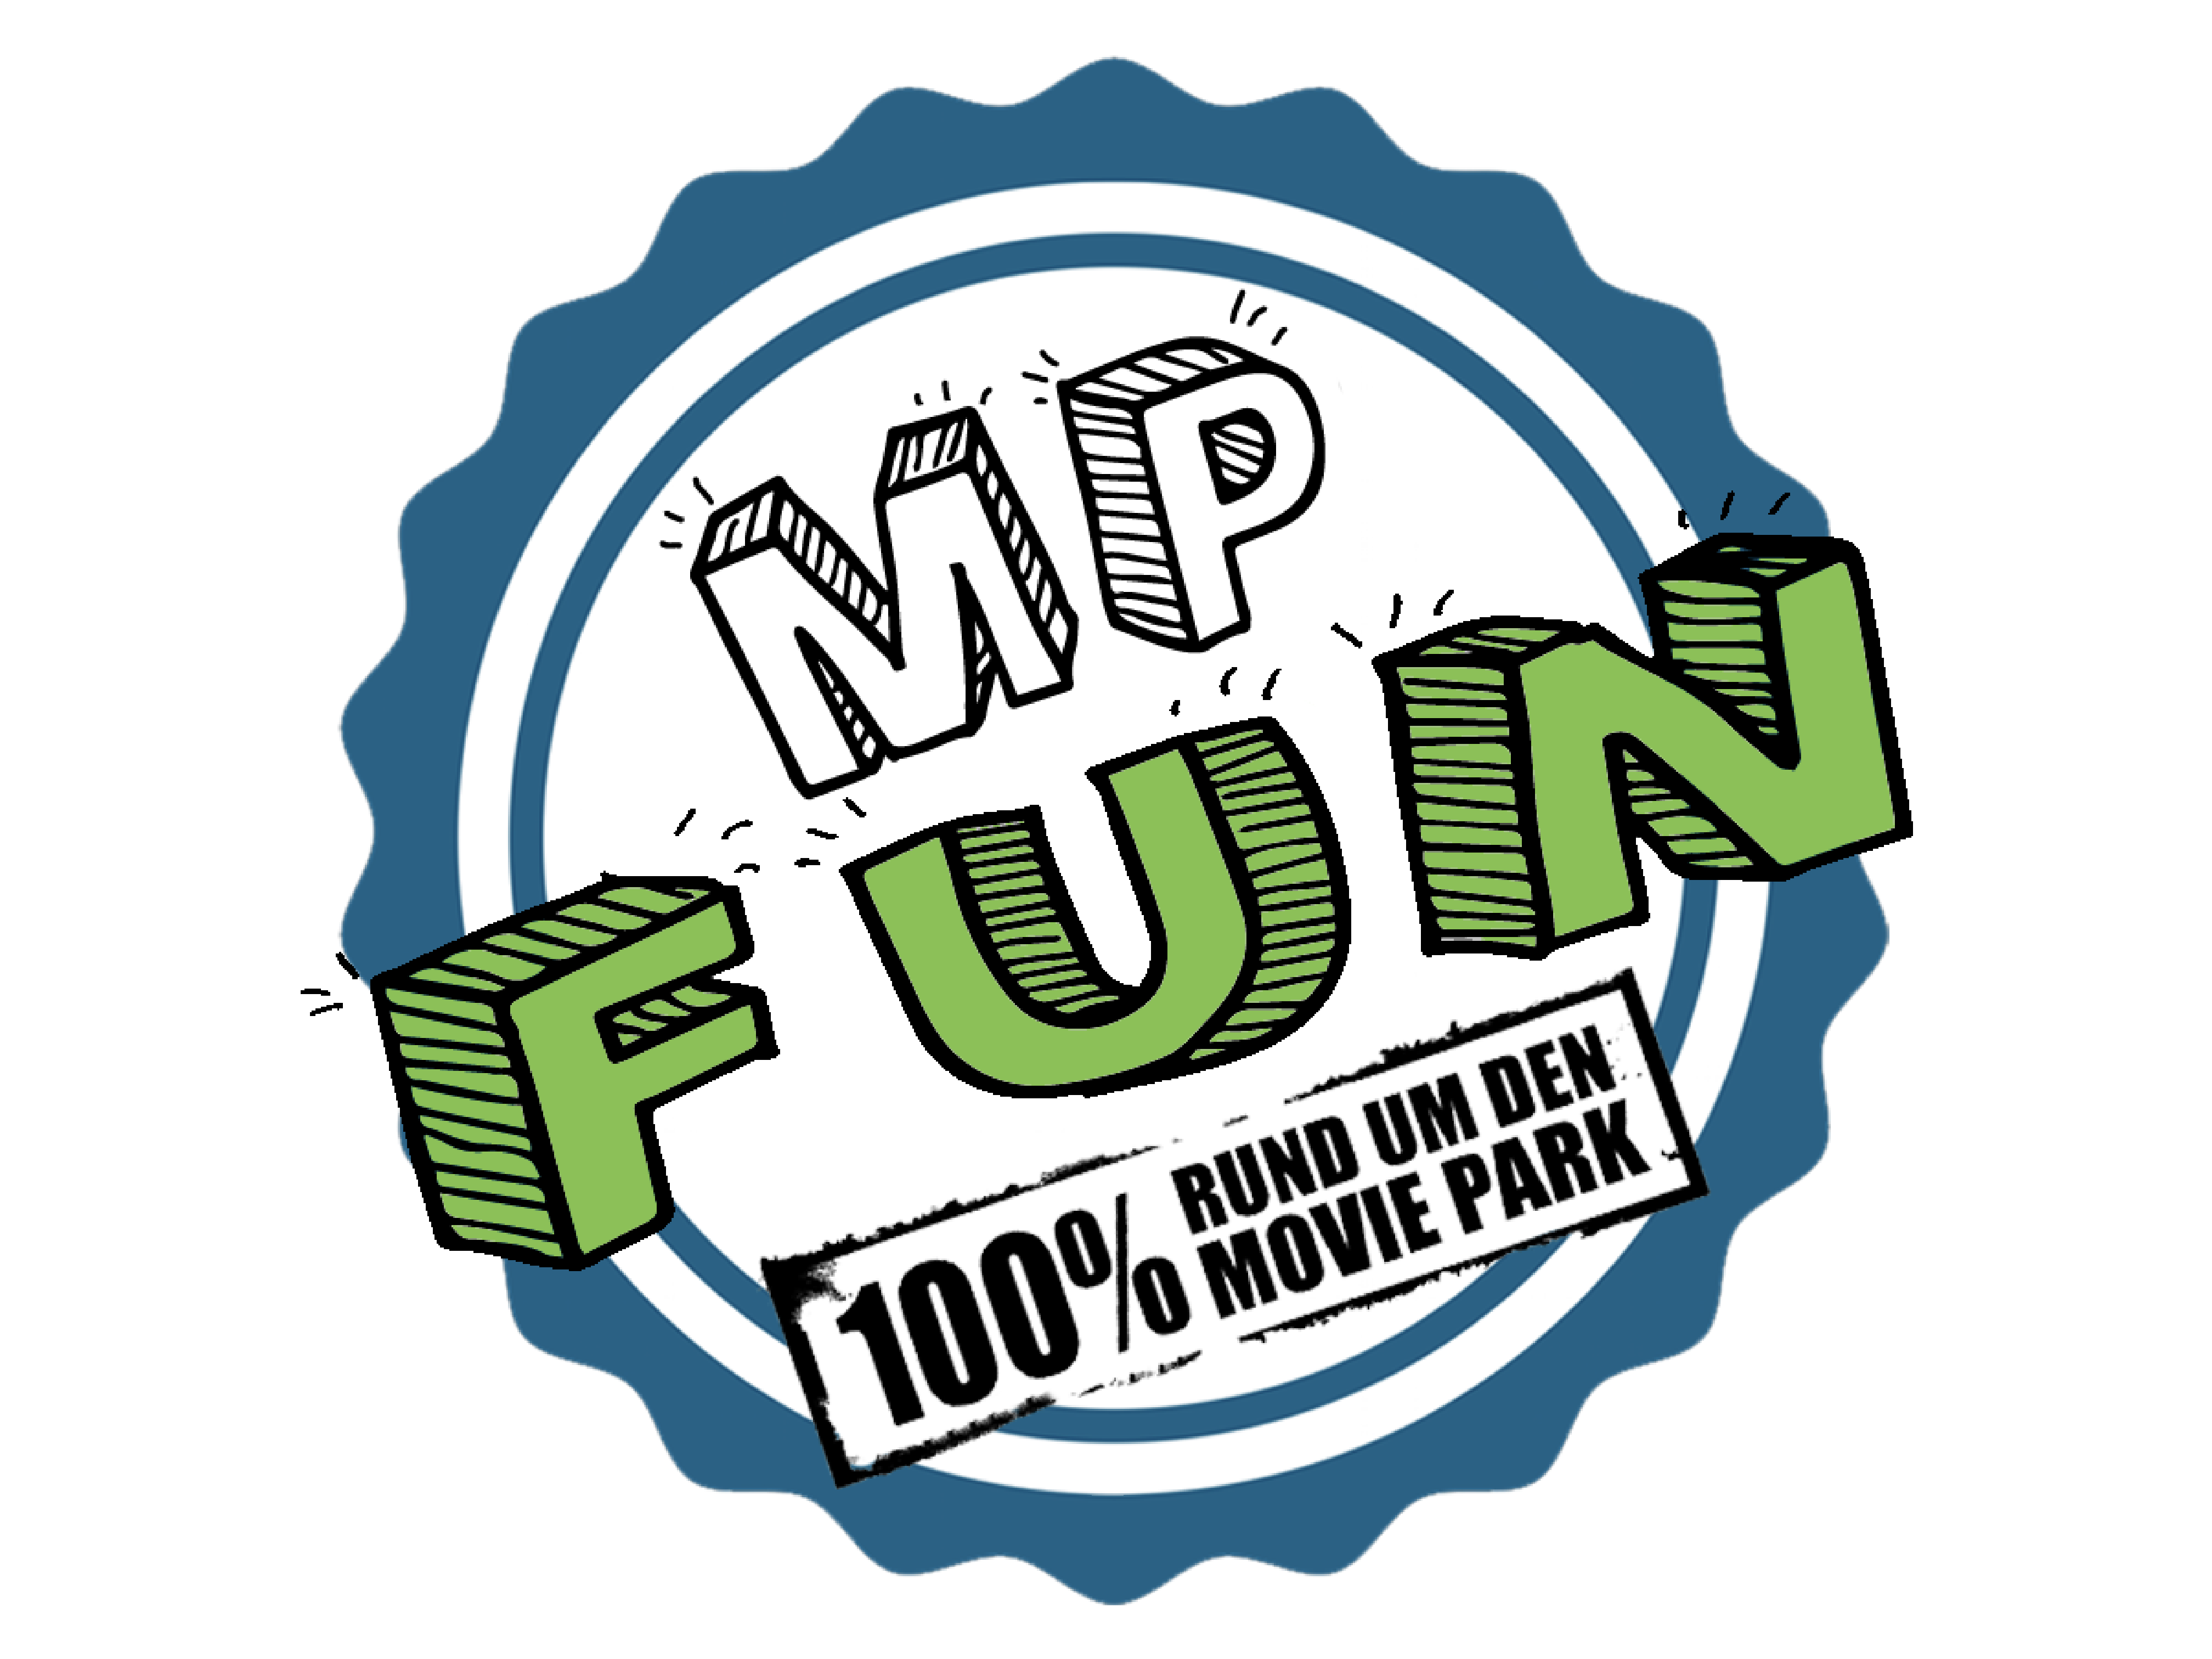 MP FUN – 100% rund um den Movie Park